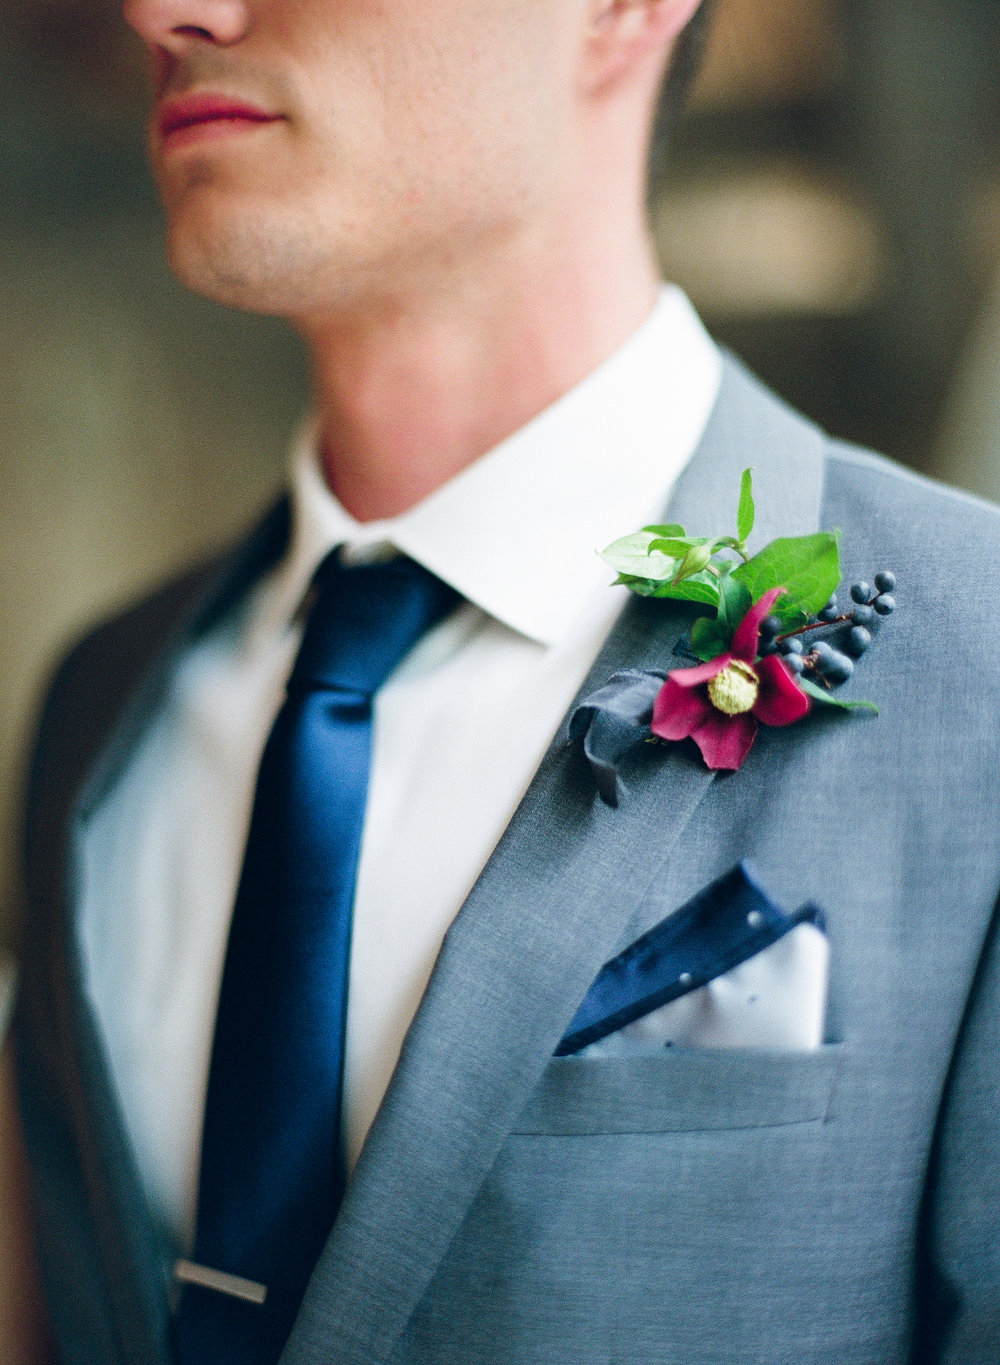 boutonniere | The Wildflowers is an event planning and design company inspiring stylish brides and grooms to dream a better dream for their wedding day. Follow along on instagram: @ thewildflowers_com